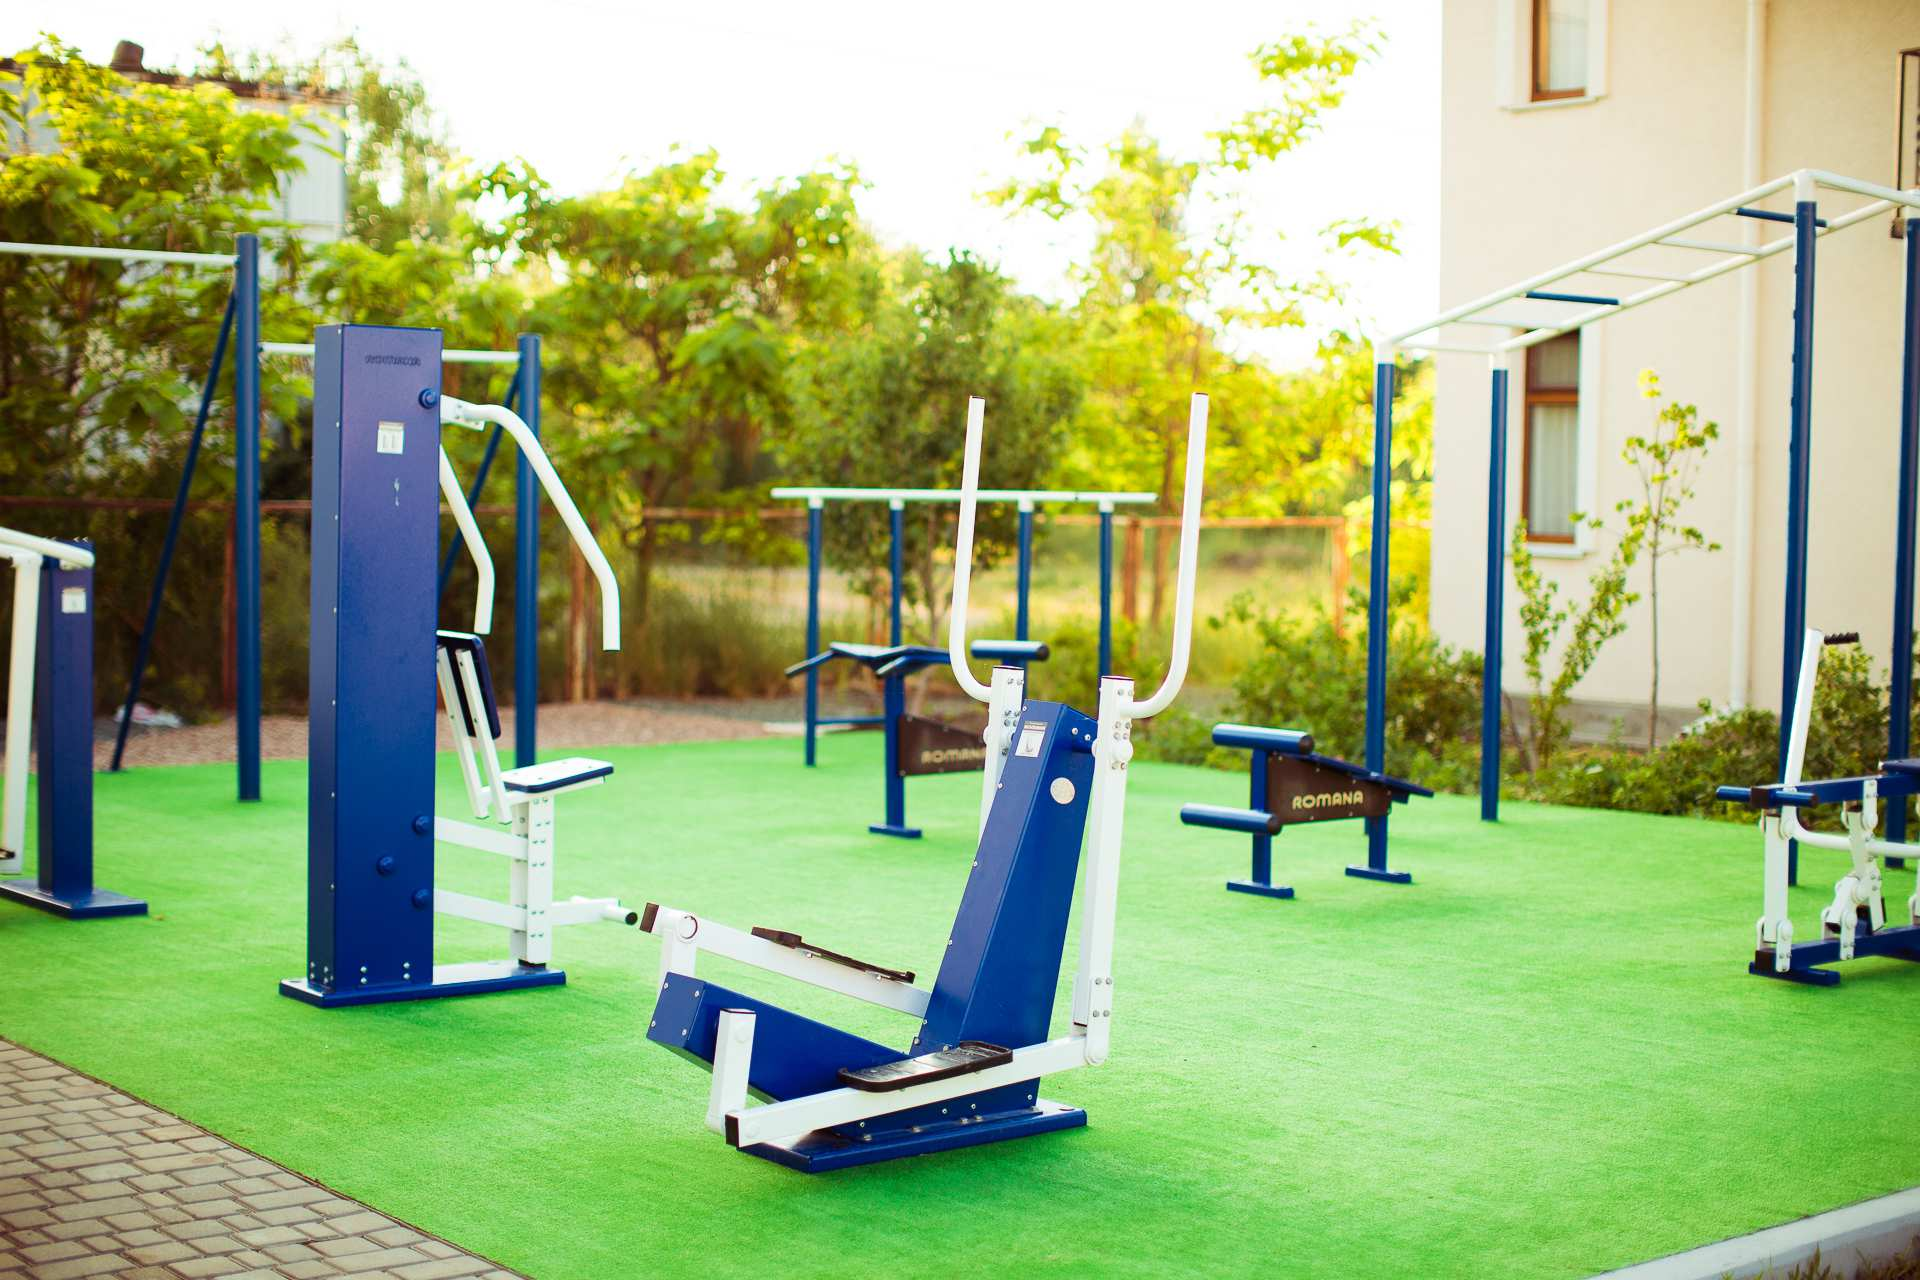 Playground with gym